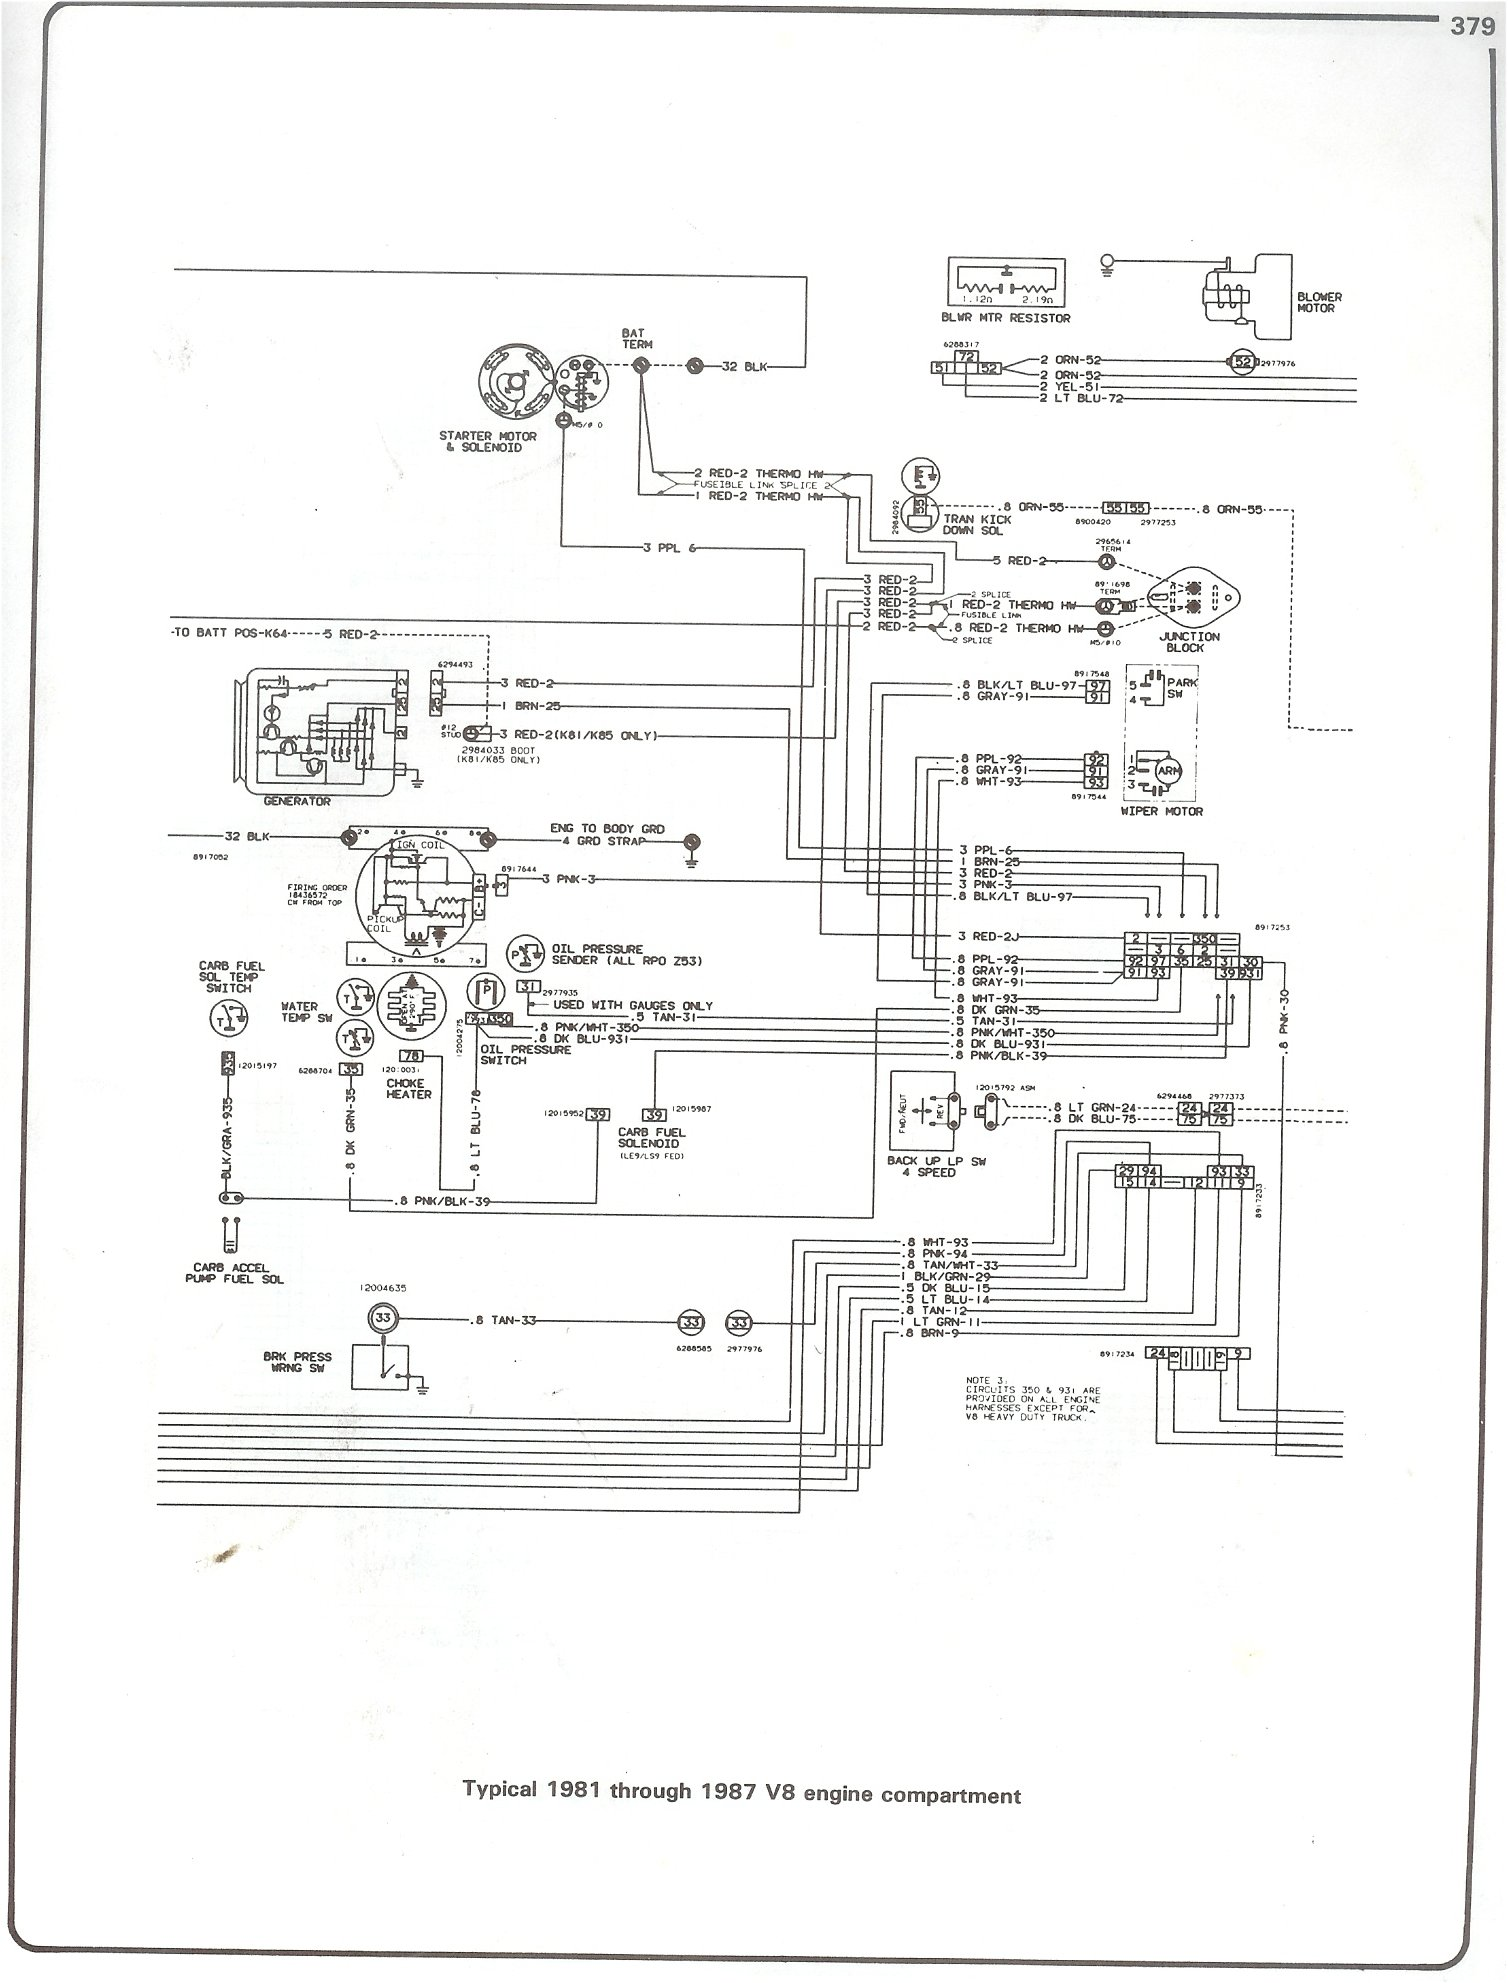 1978 Chevy Truck Wiring Diagram Data 72 C10 Engine Complete 73 87 Diagrams 1972